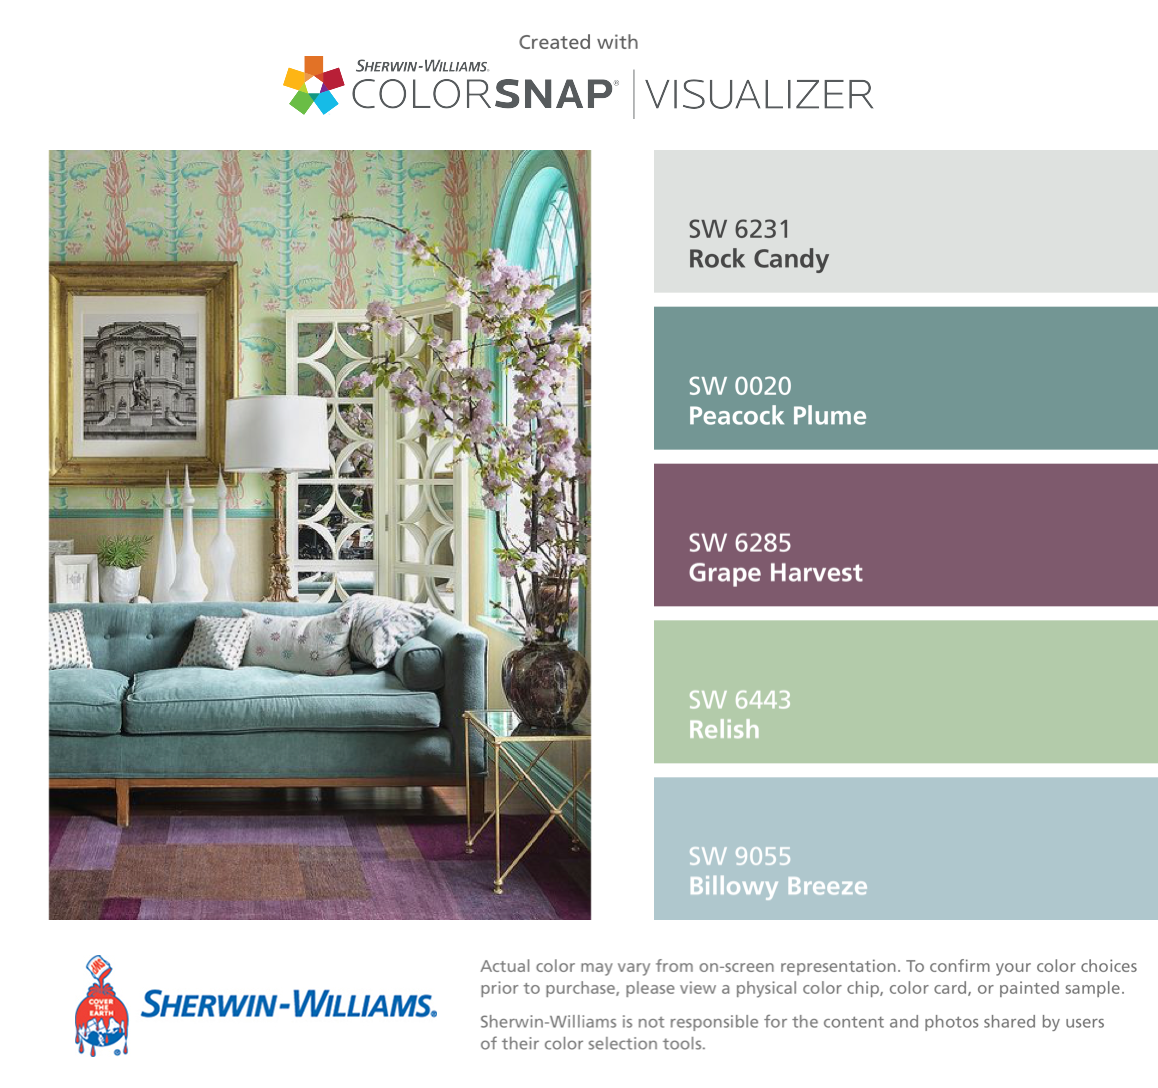 Color Visualizer for Your Inspiration on Color and Cutting Edge Design: Benjamin Moore Color Visualizer | Sherwin Williams Virtual Painter | Color Visualizer